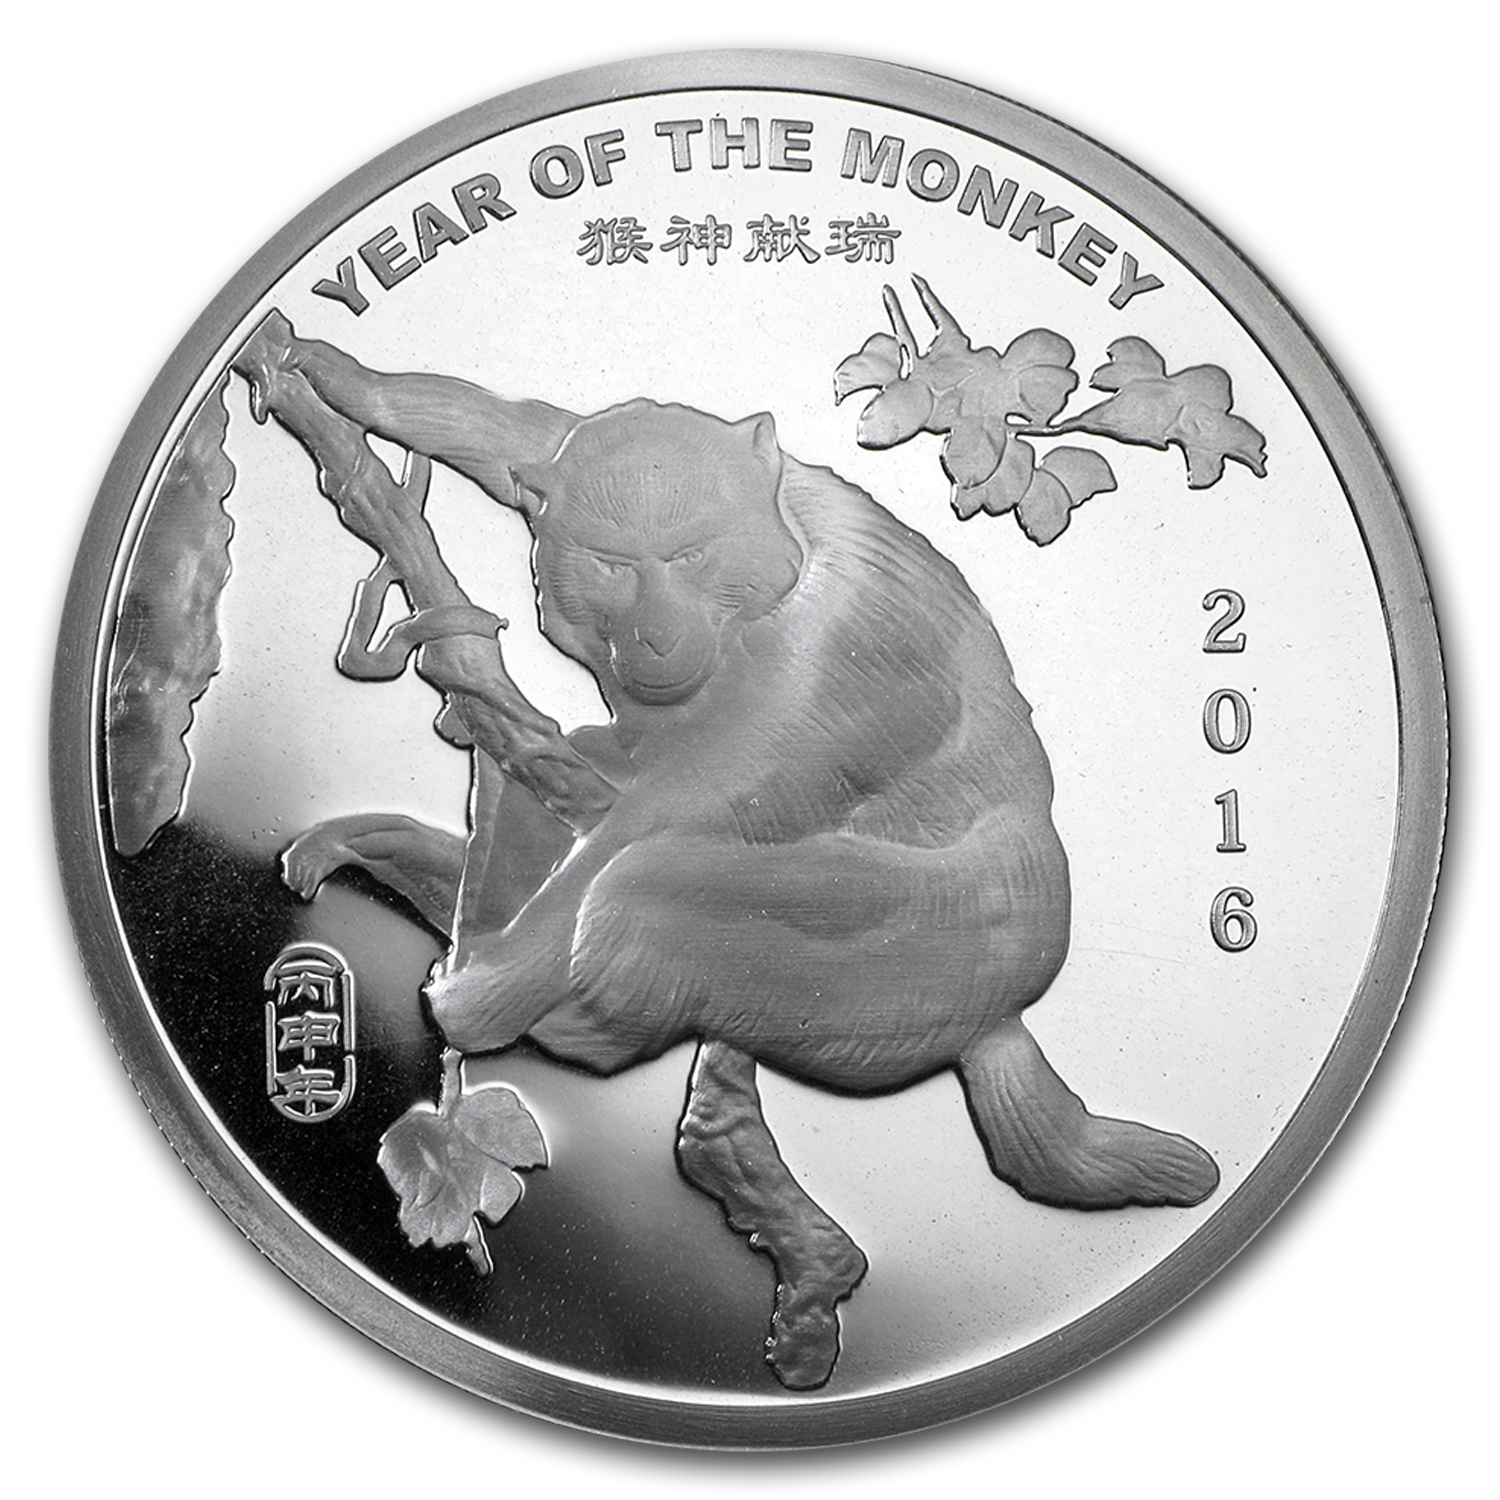 2 oz Silver Round - APMEX (2016 Year of the Monkey)